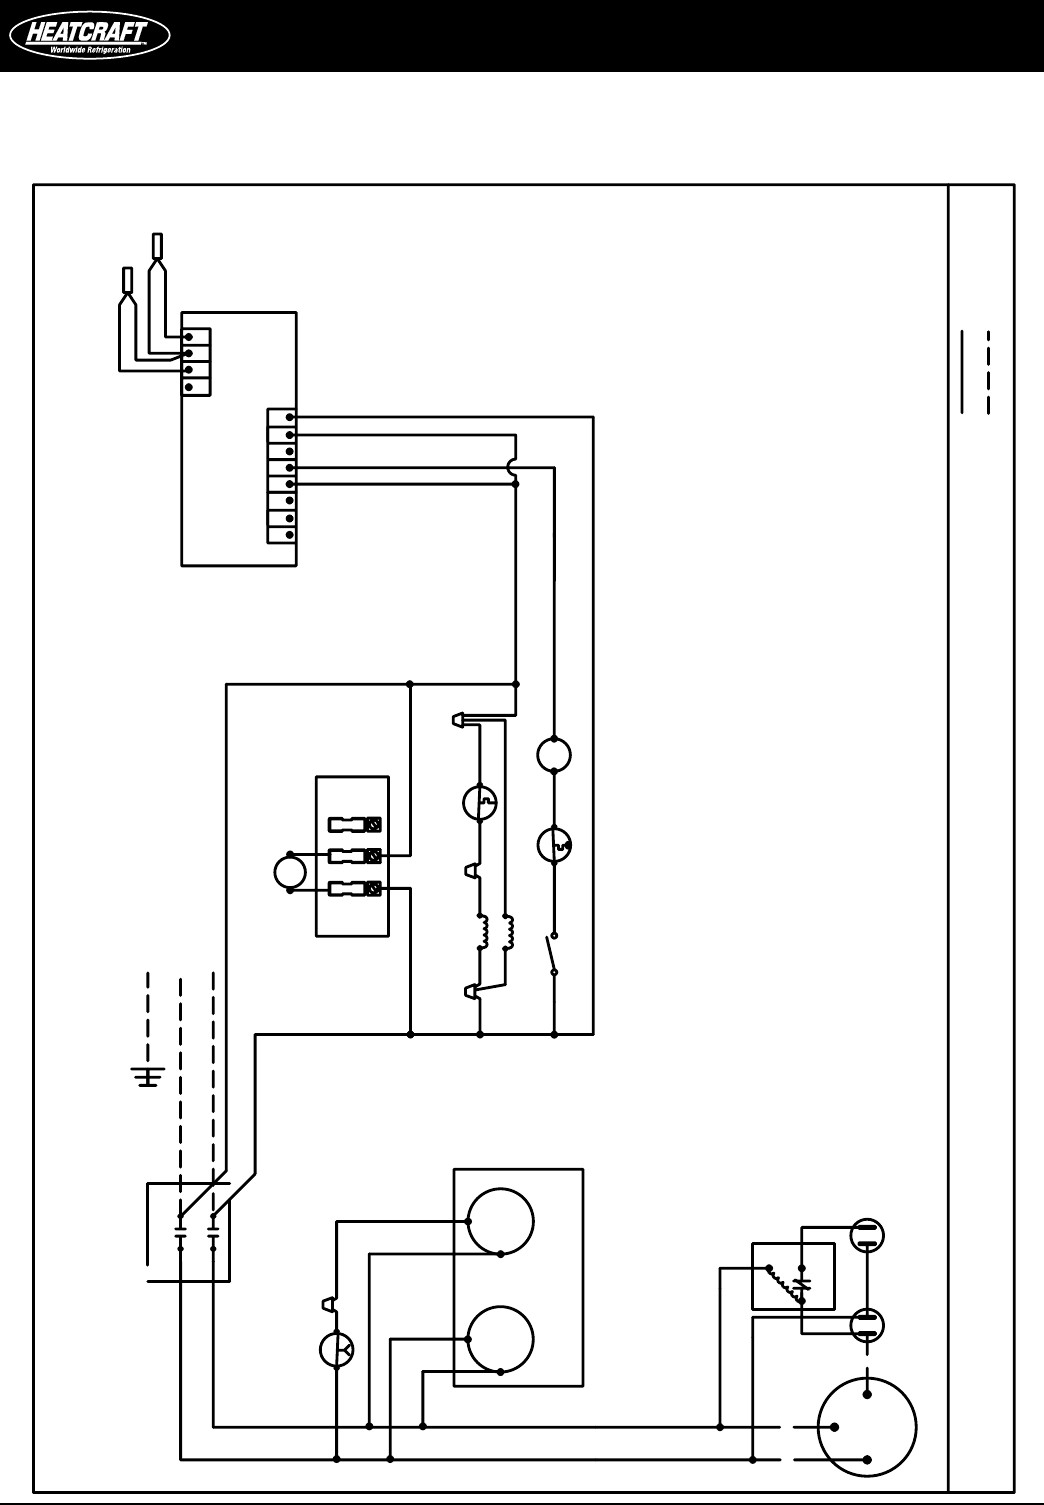 walk in cooler wiring diagram 220v heatcraft walk in cooler wiring diagram download #11